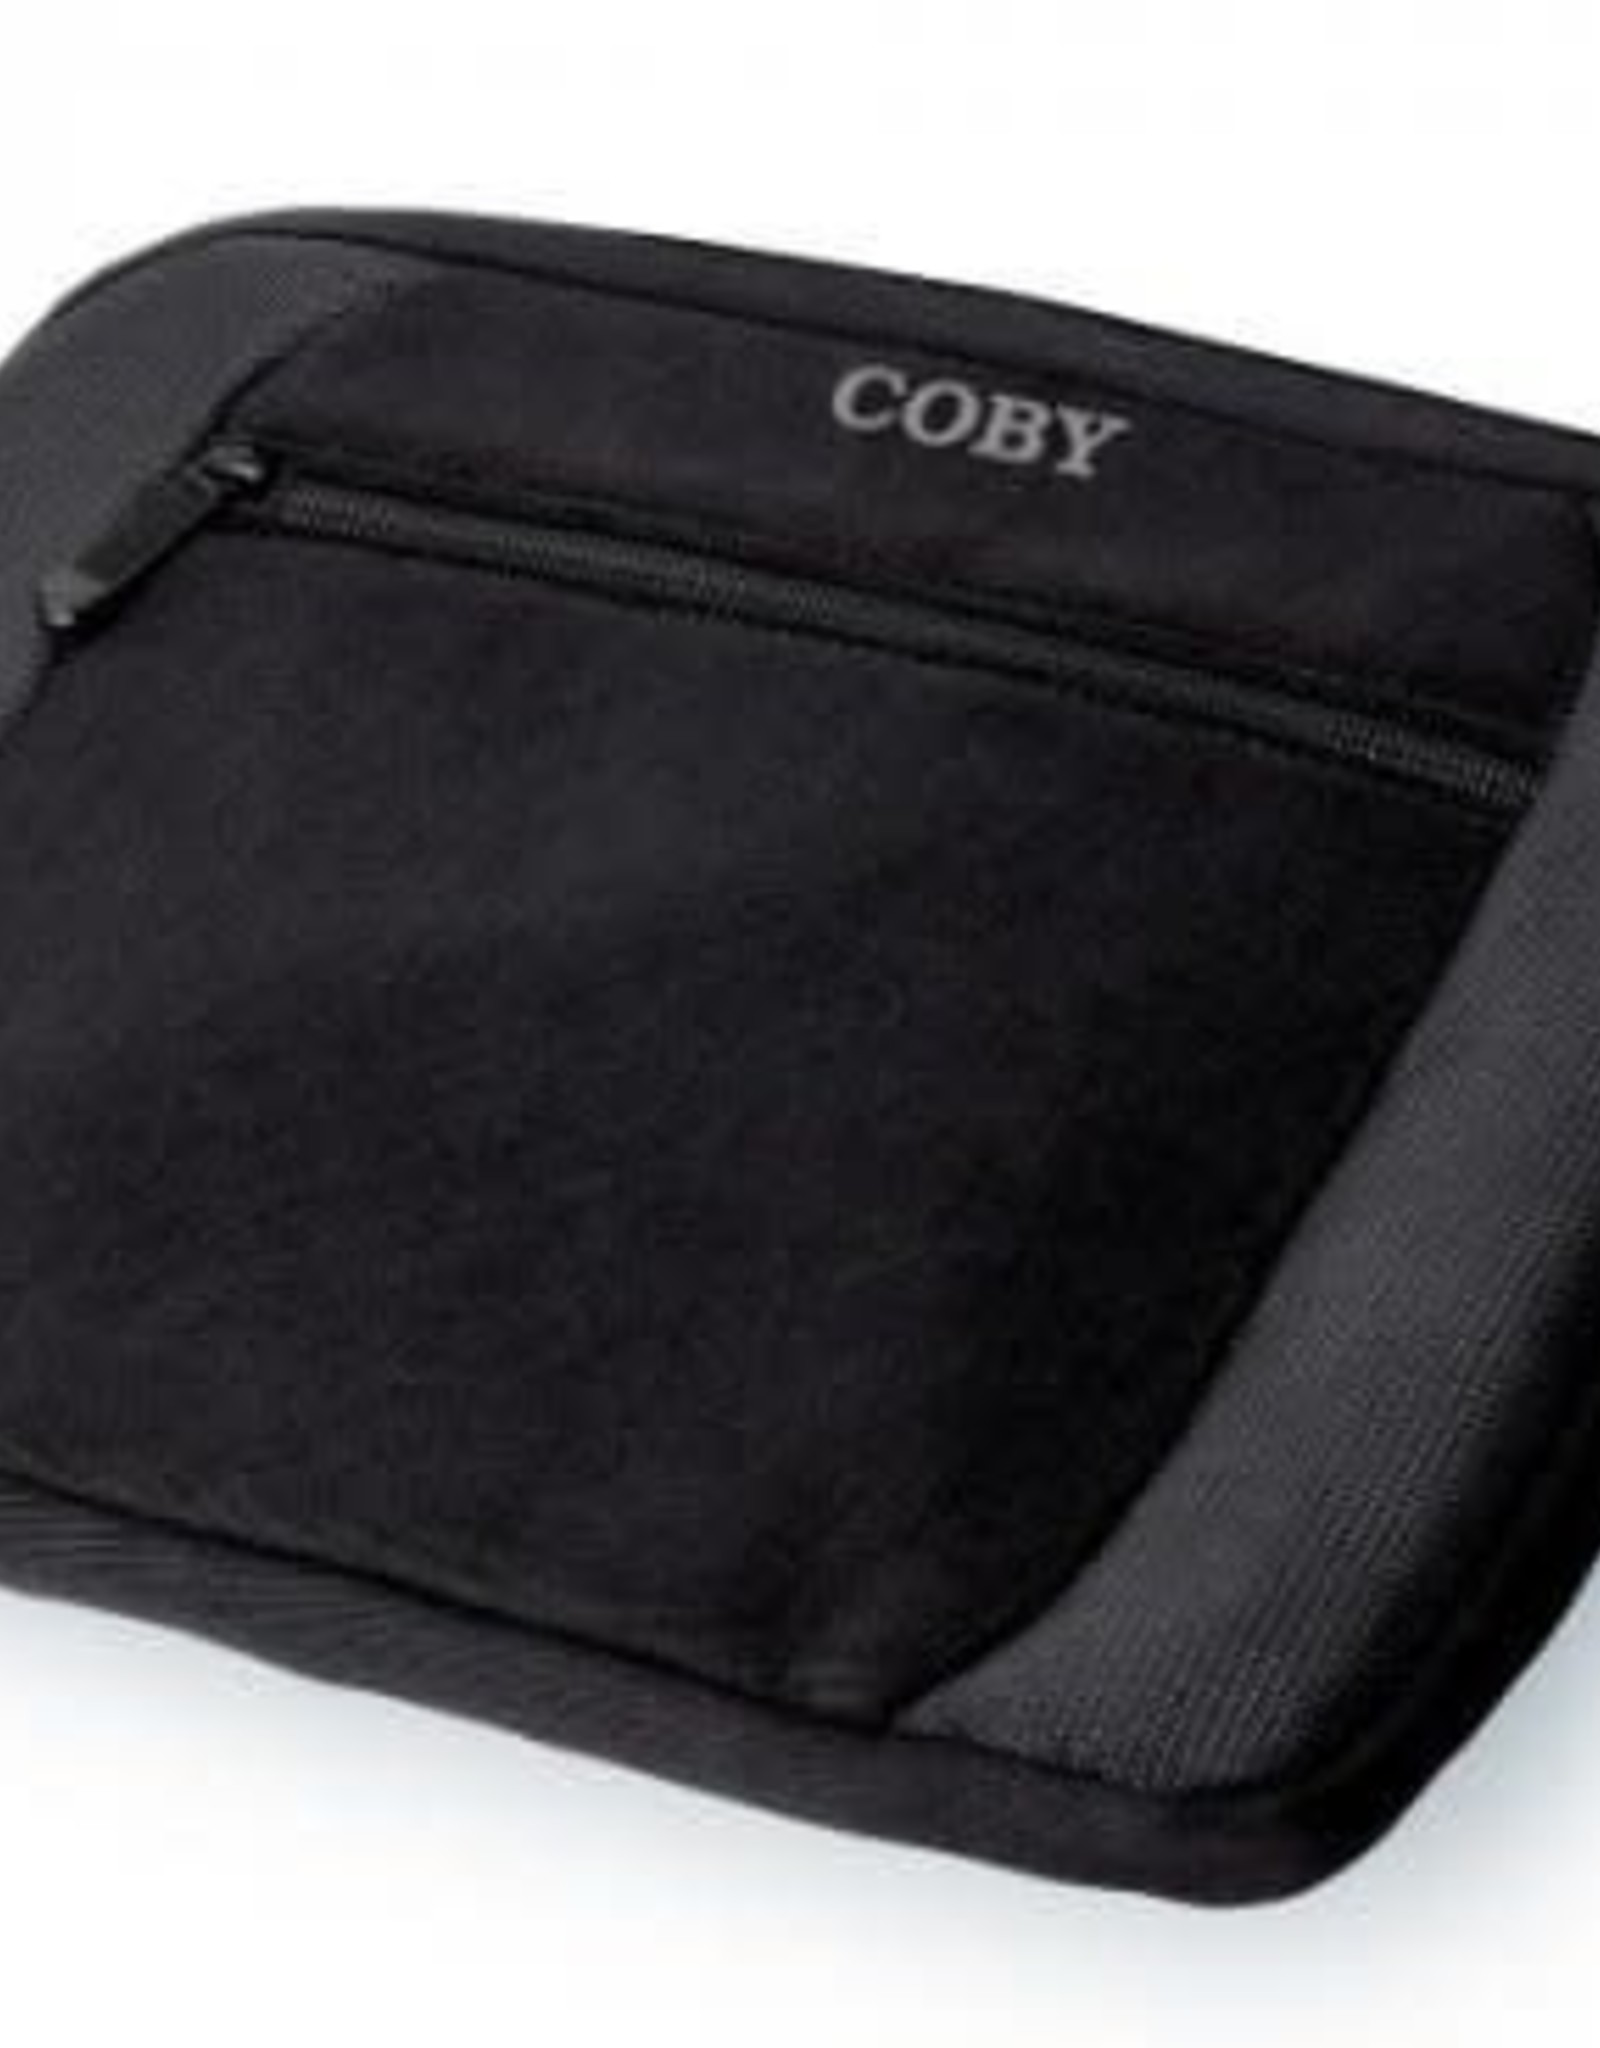 Coby Tablet Accesory Kit 10 in